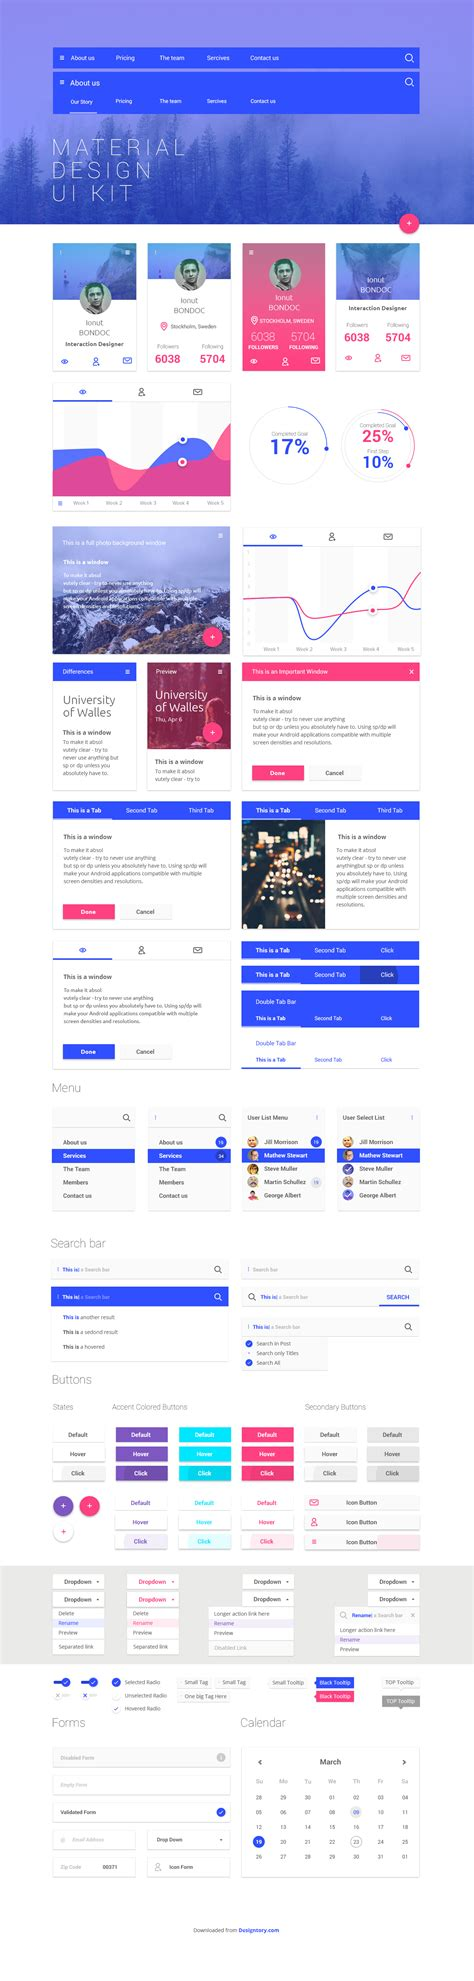 google design ui kit free material design ui kit designtory